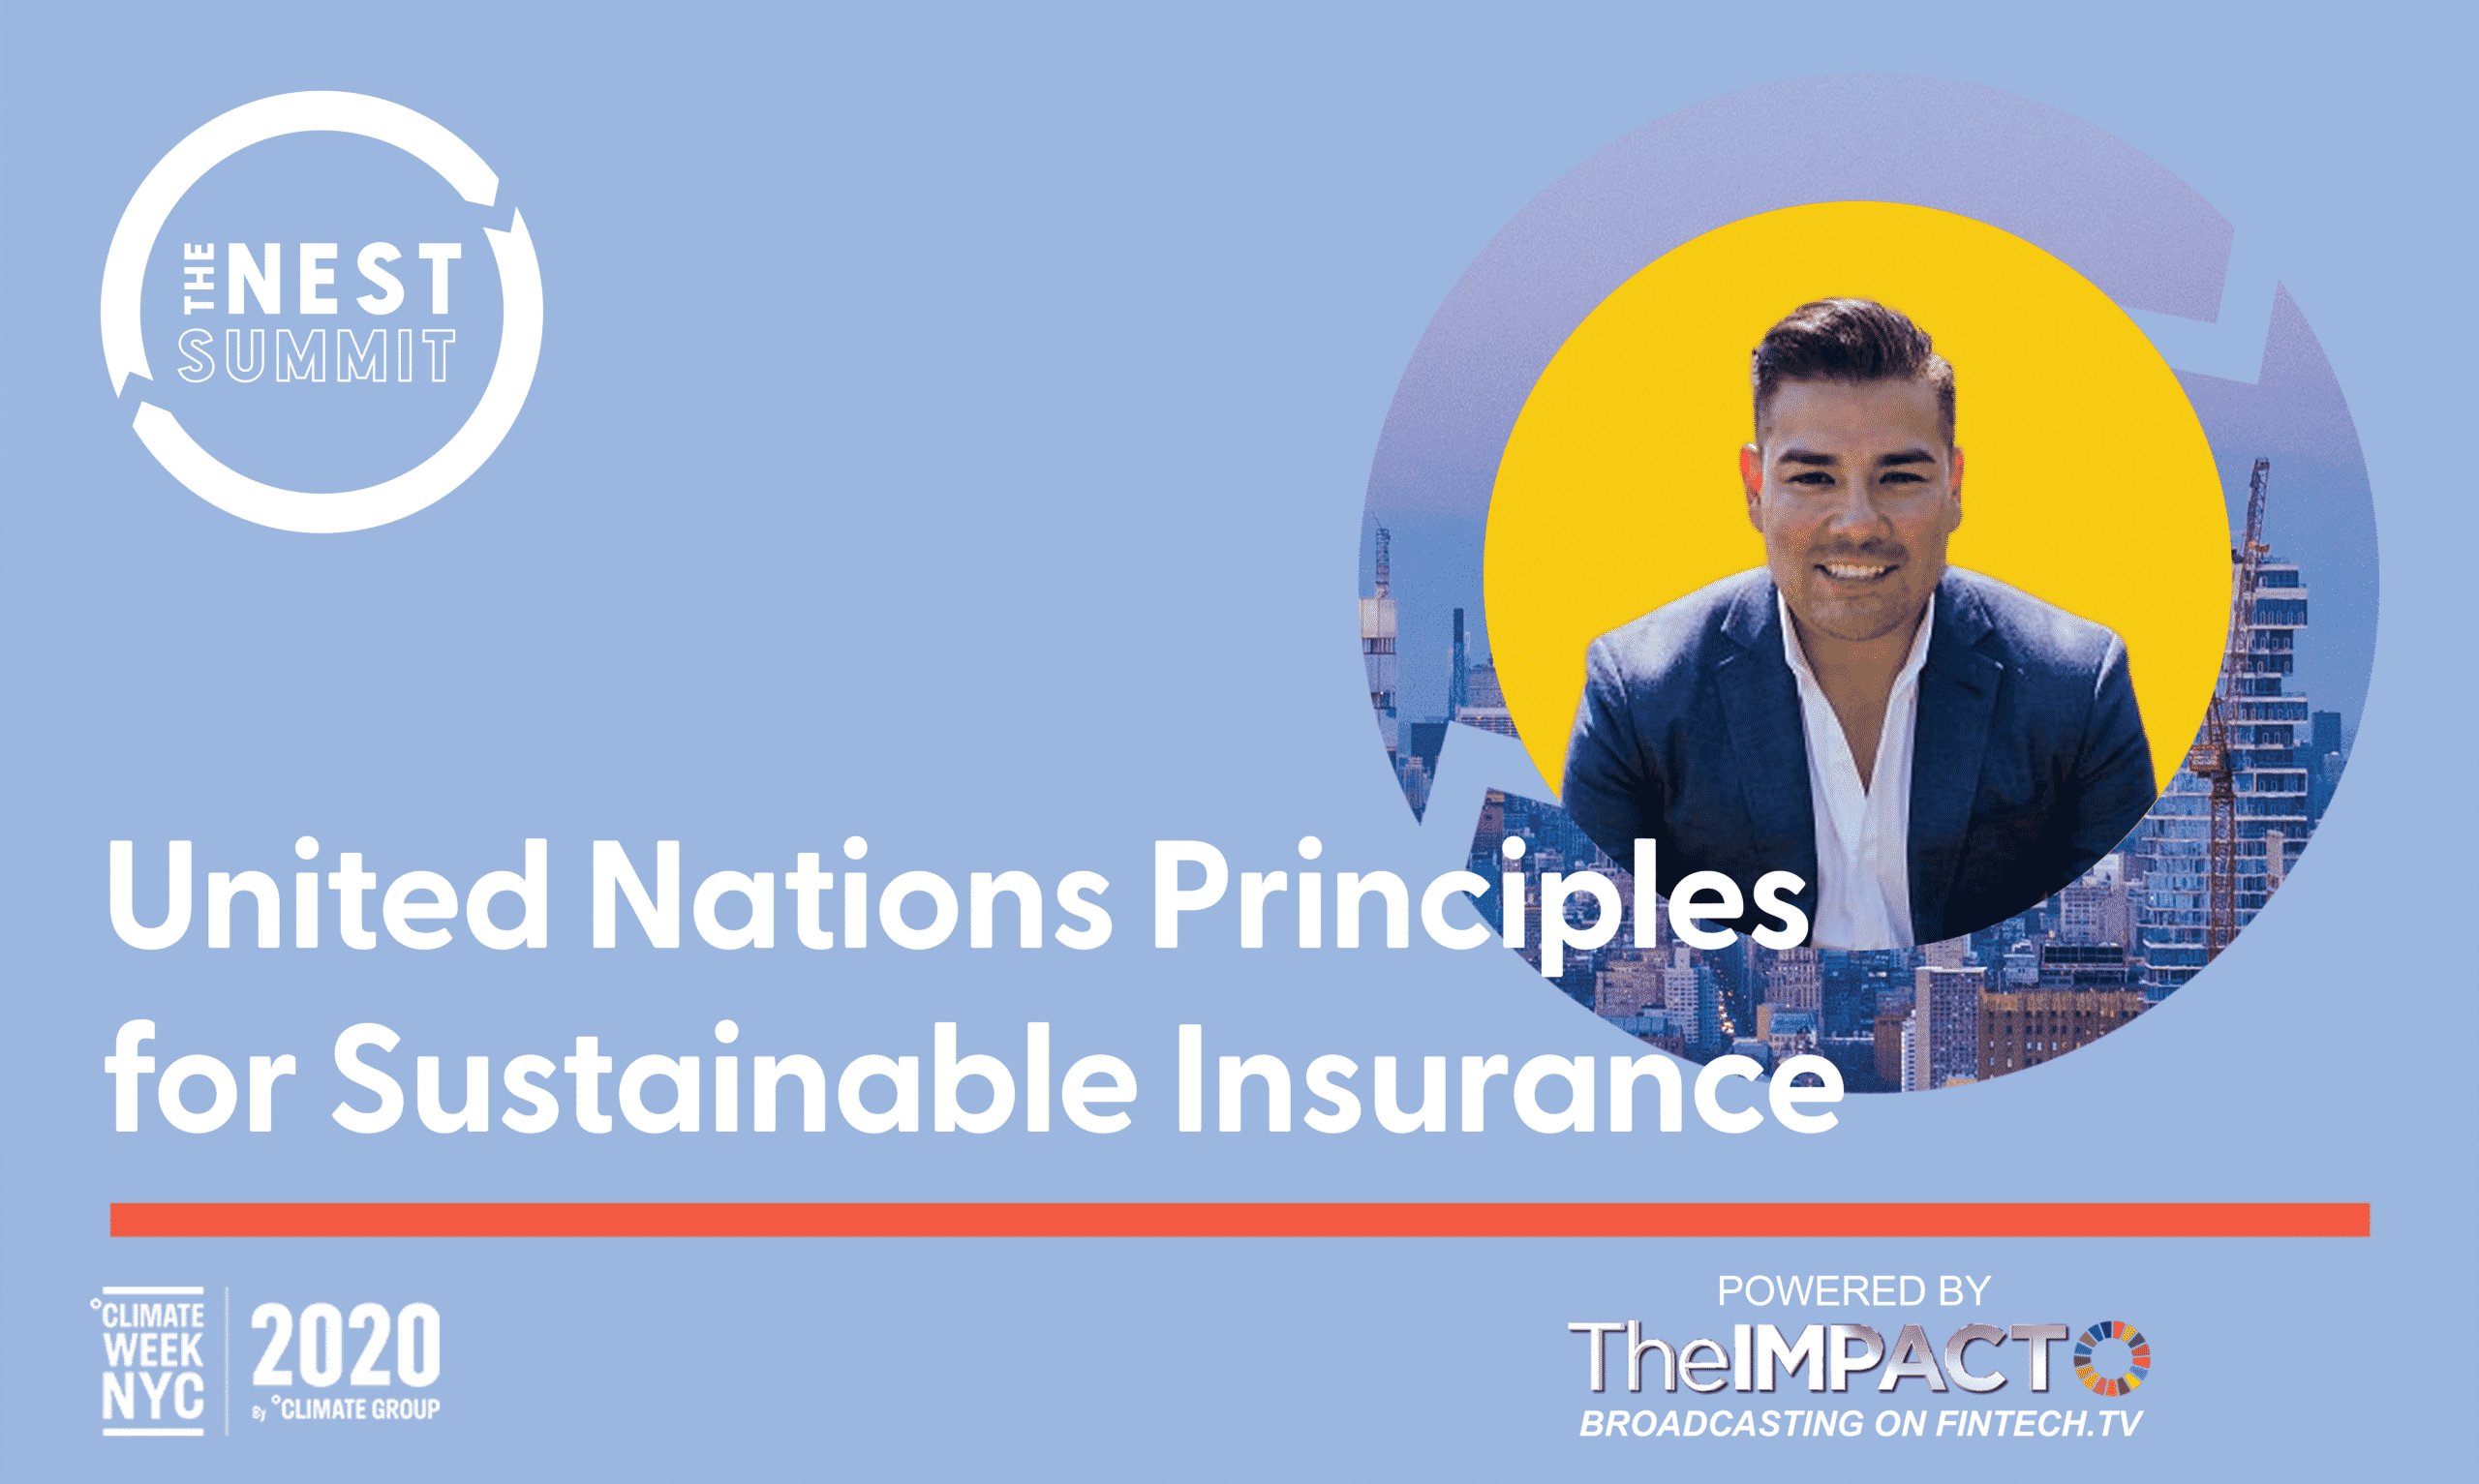 United Nations Principles for Sustainable Insurance with Ricardo Lara